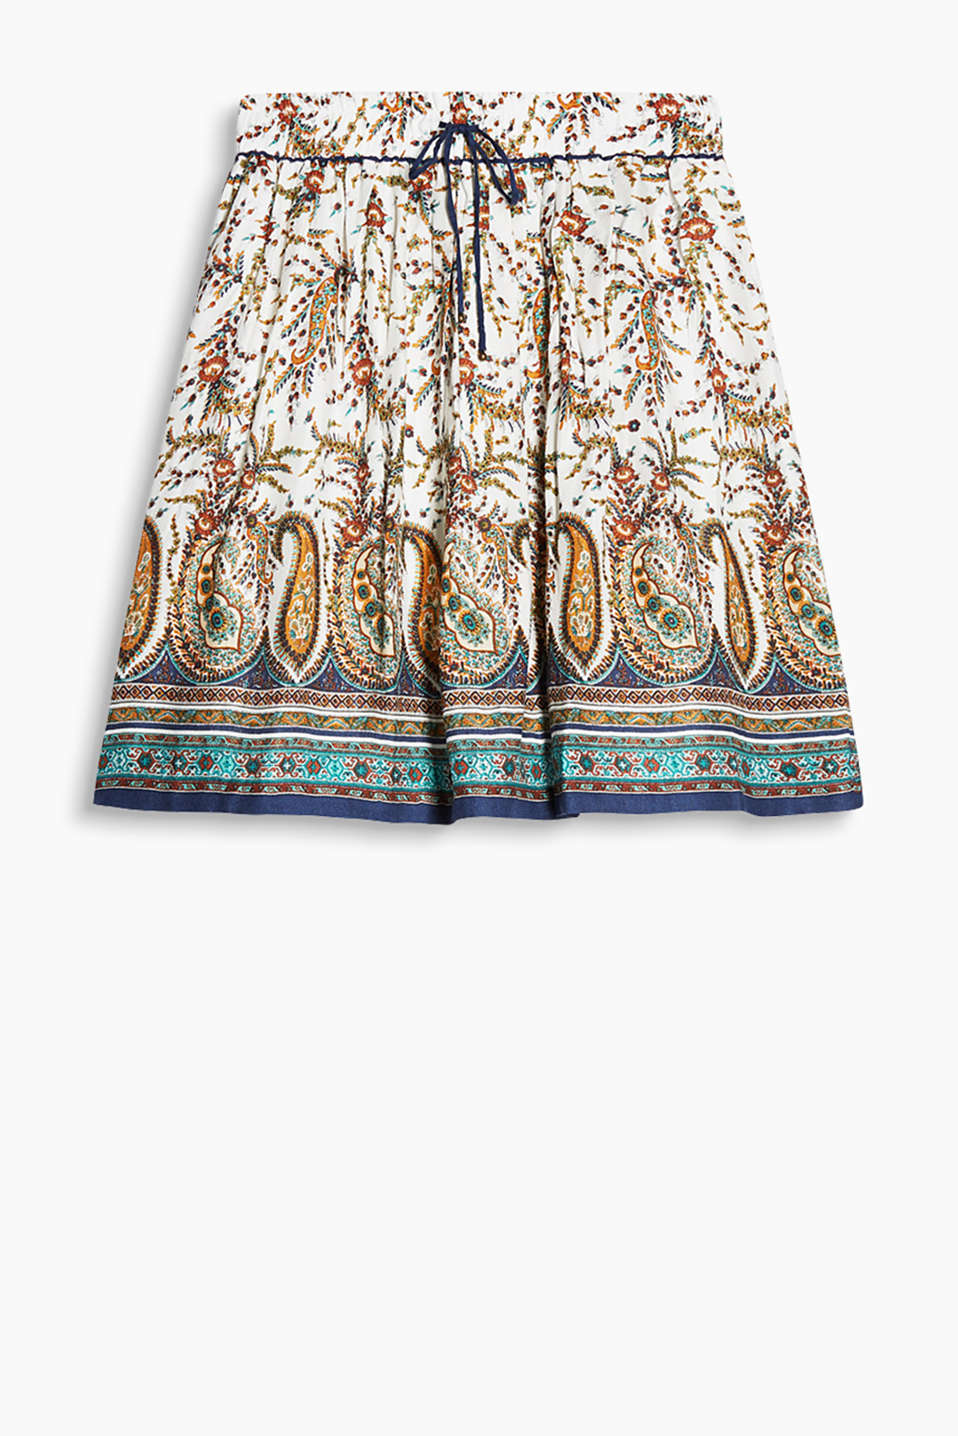 Flowing skirt in a swirling design with a paisley pattern and an elasticated waistband